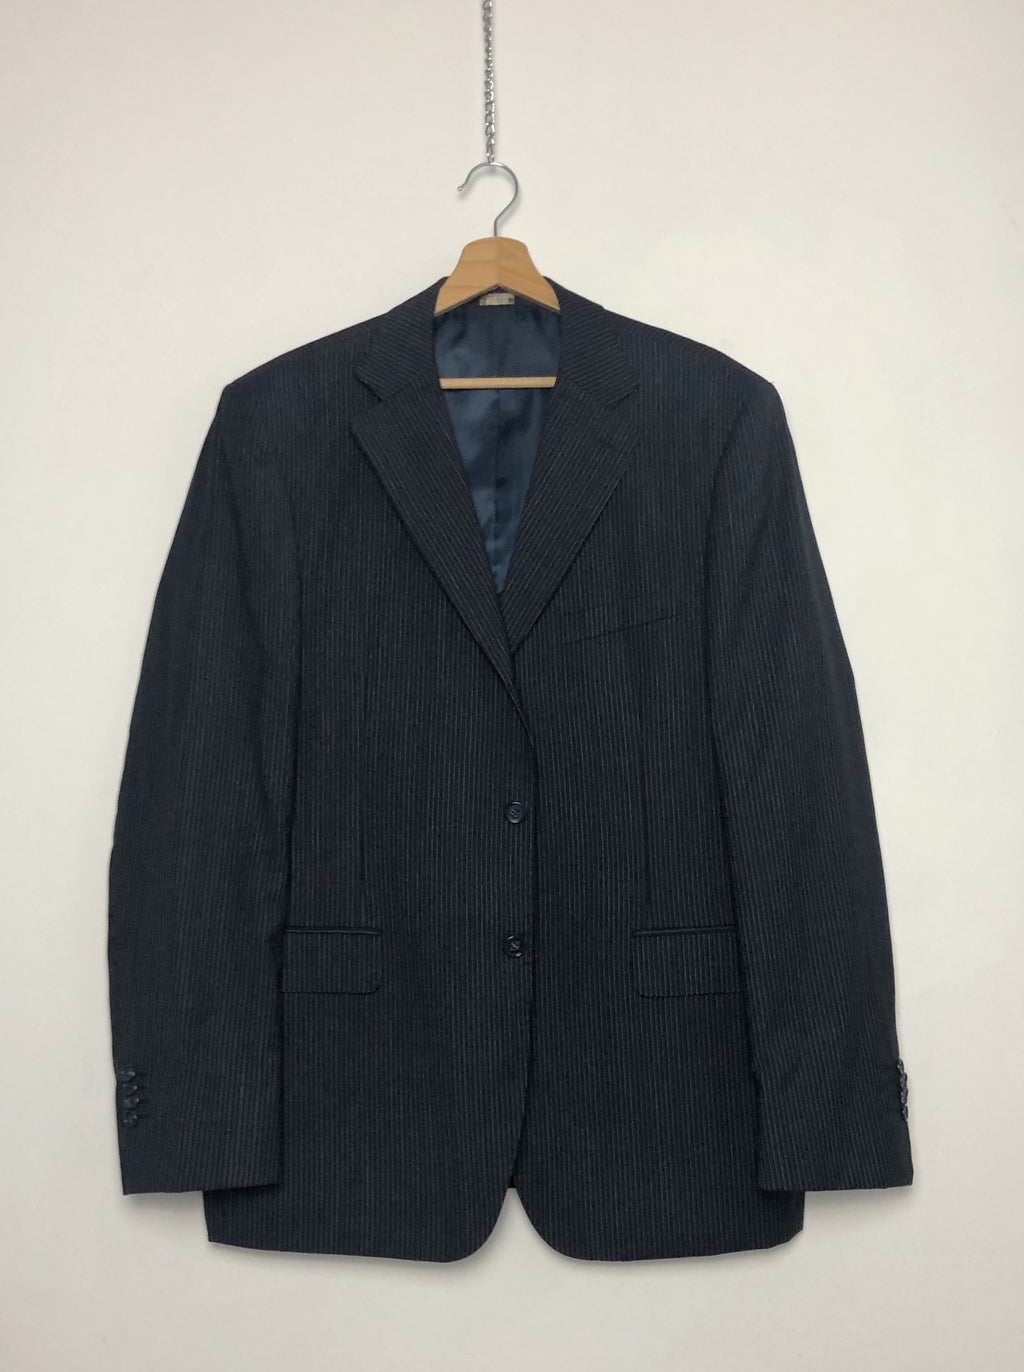 David Saddler Vintage Blazer - XXL